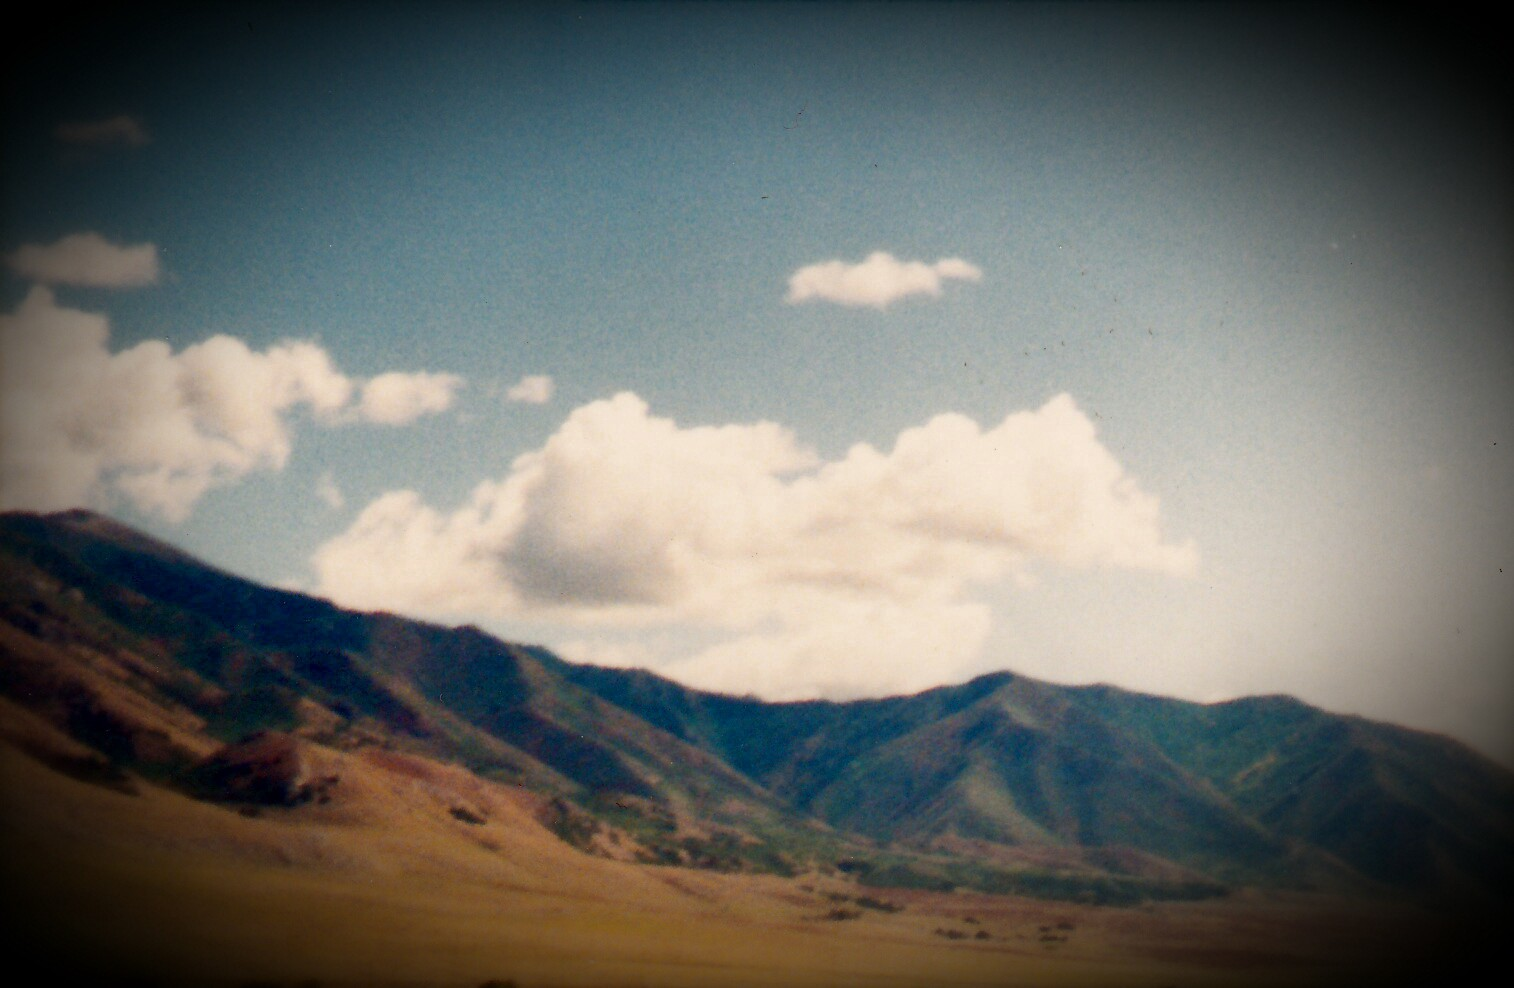 A vista of low mountains with blue sky and low white clouds.